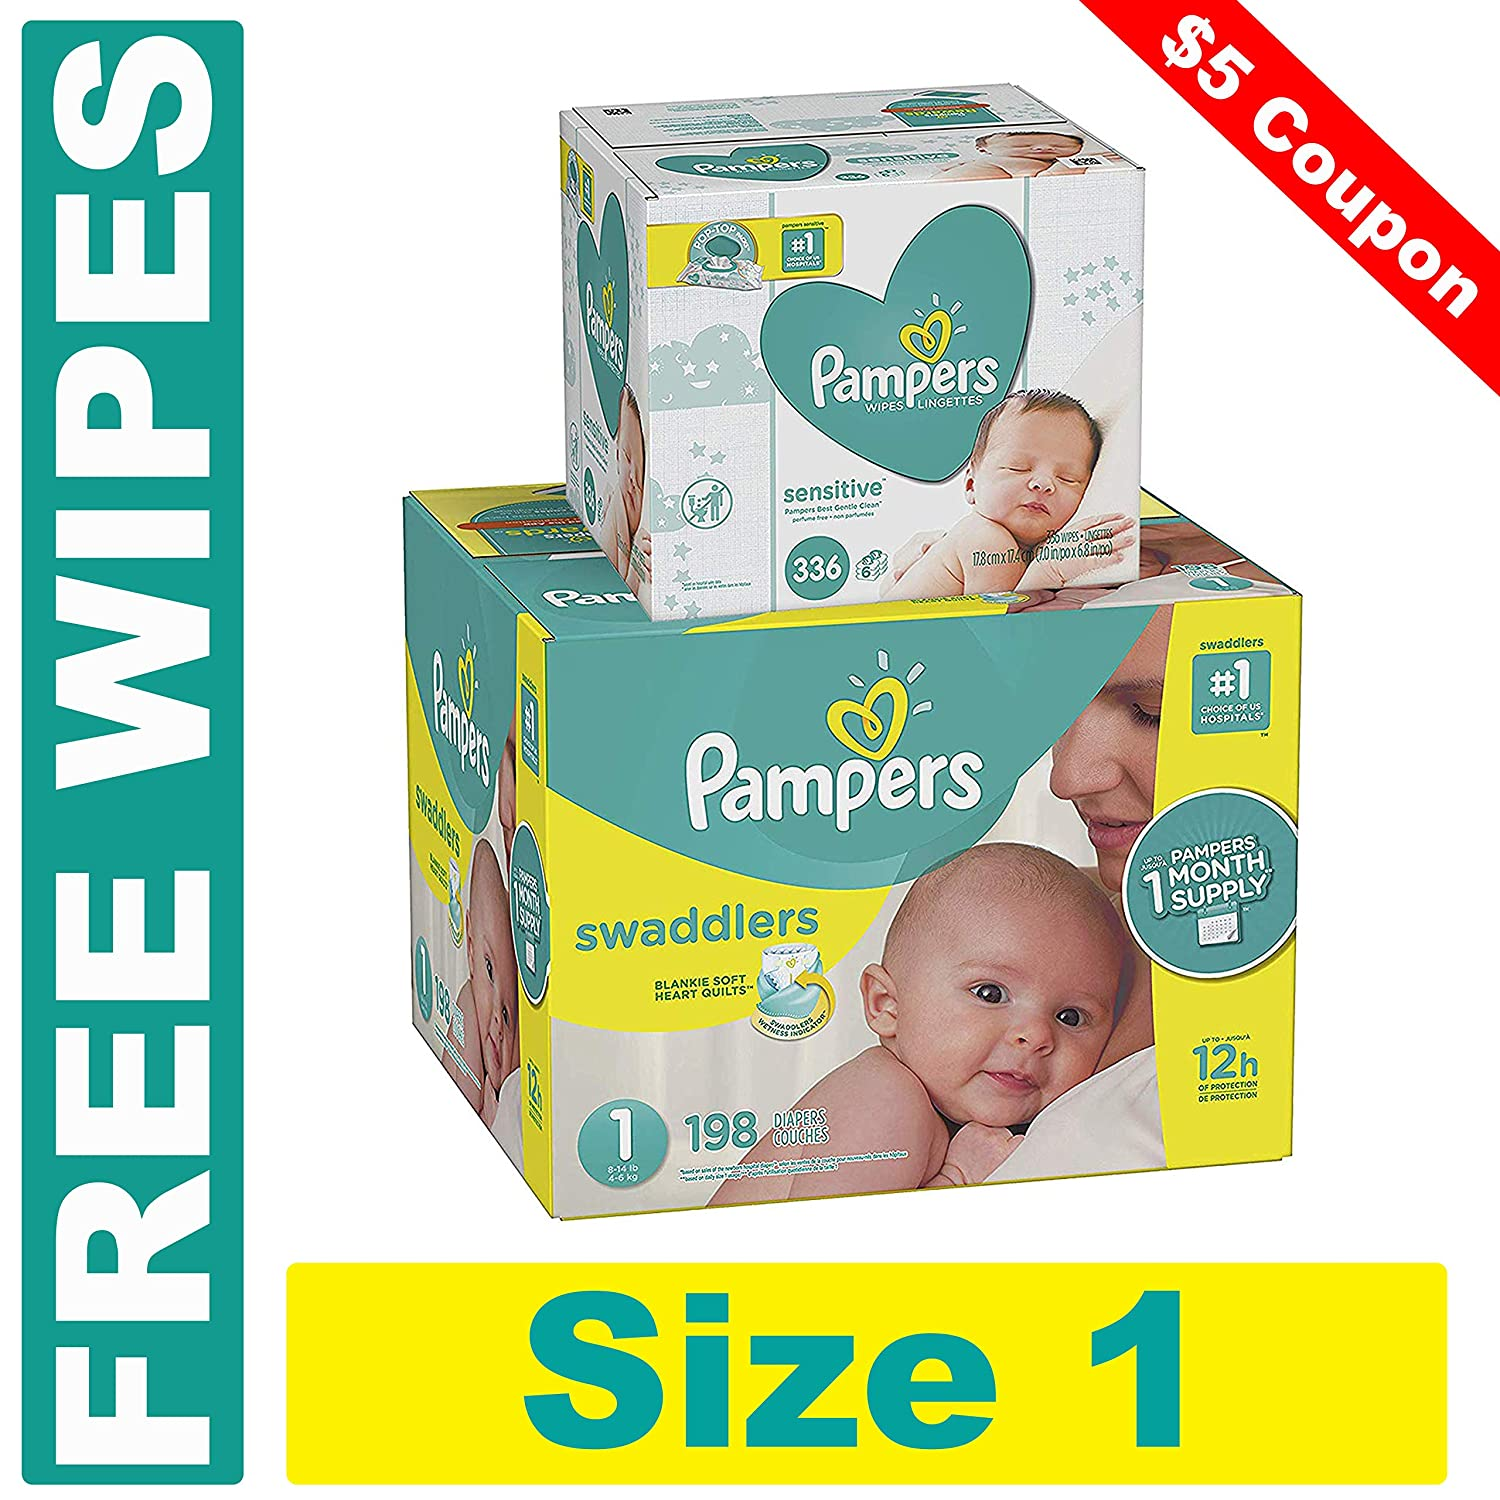 Pampers Swaddlers Disposable Baby Diapers Size 3, 168 Count and Baby Wipes Sensitive  Pop-Top Packs, 336 Count PLUS LIMITED TIME FREE BONUS WIPES